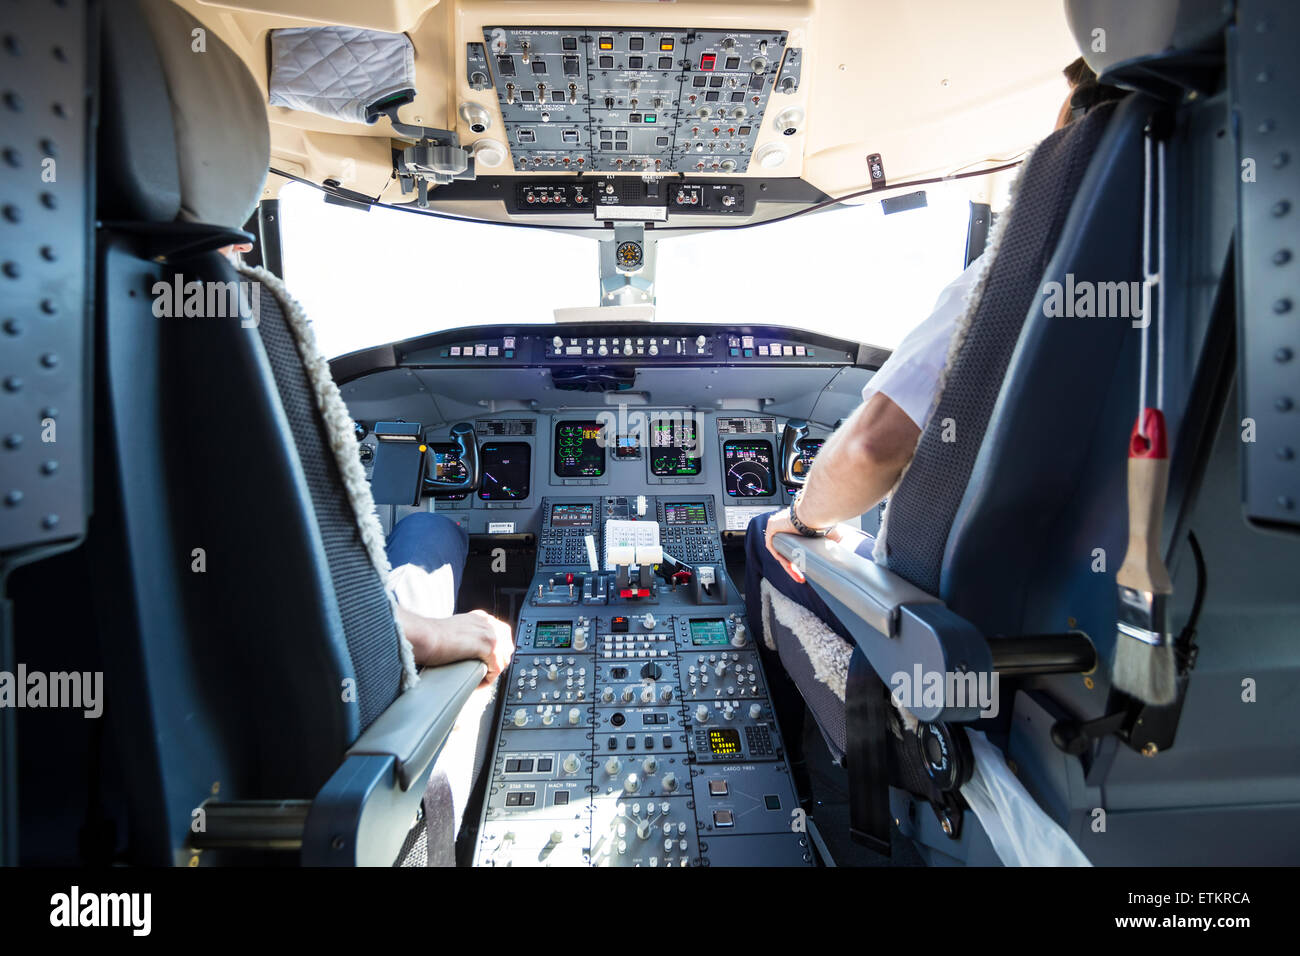 Interior of airplane cockpit. - Stock Image